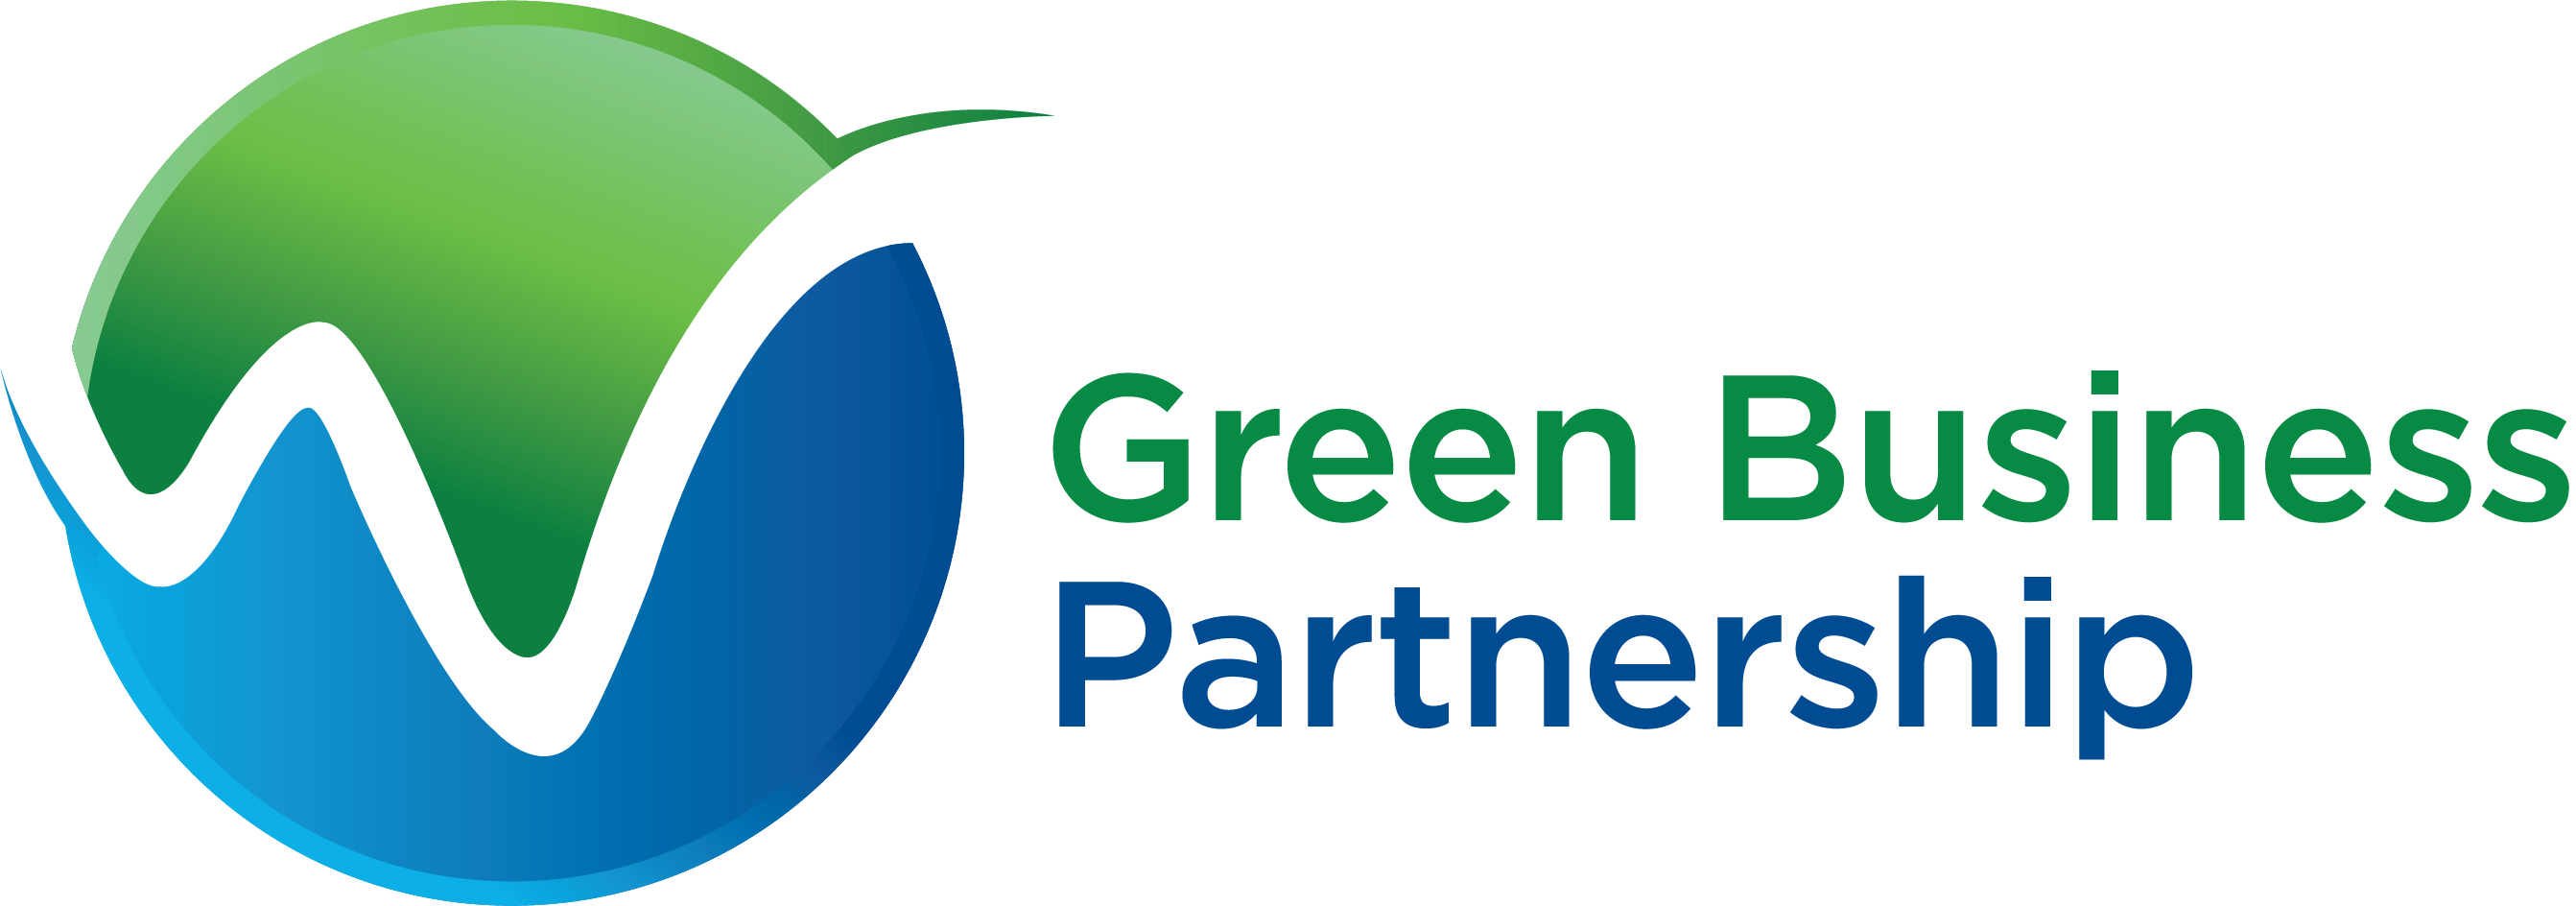 Green Business Partnership